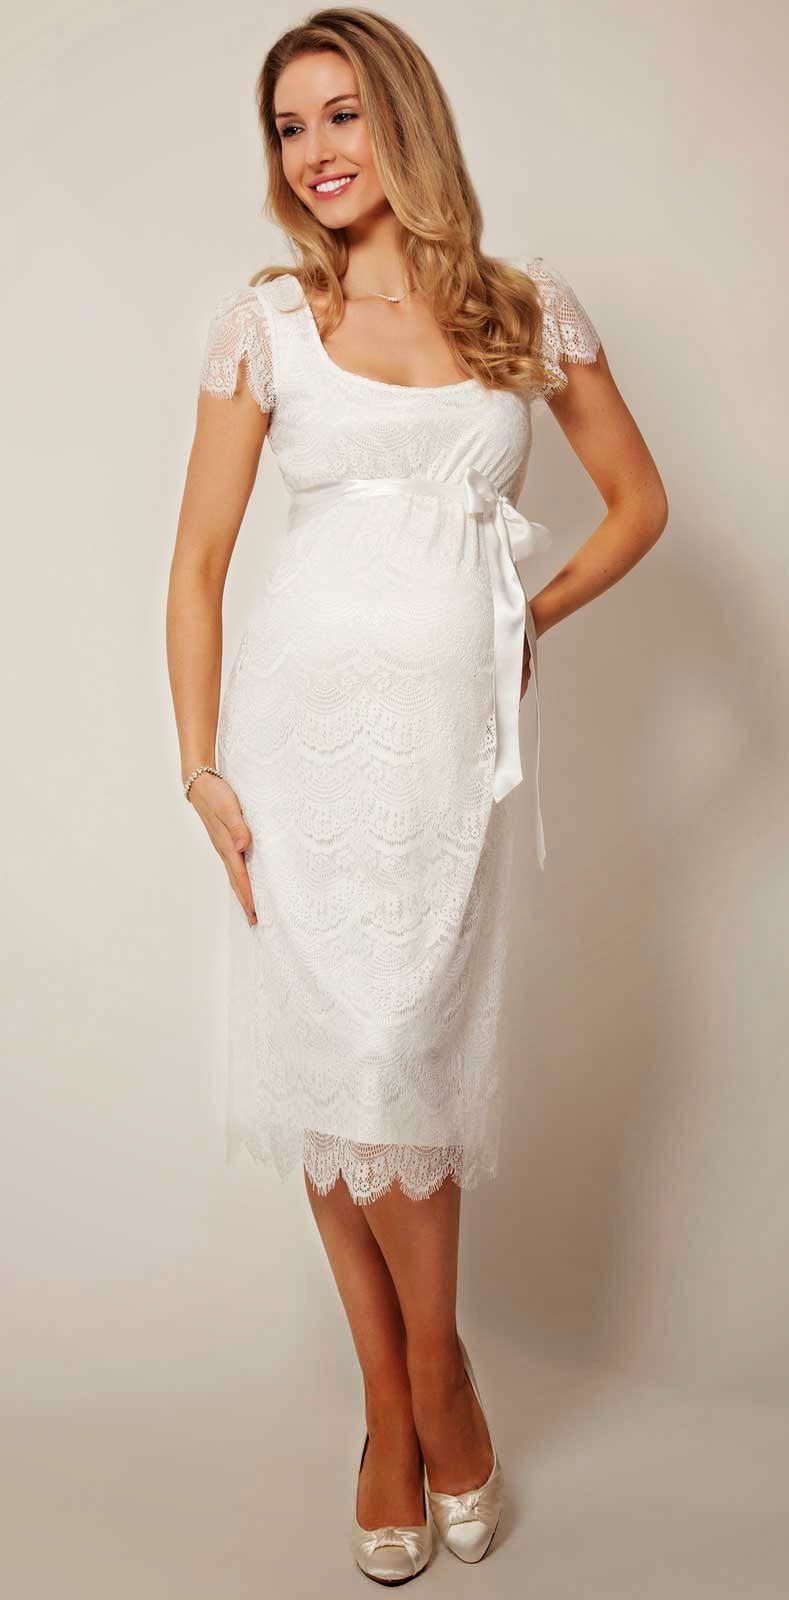 Maternity Wedding Dresses Canada Photos HD